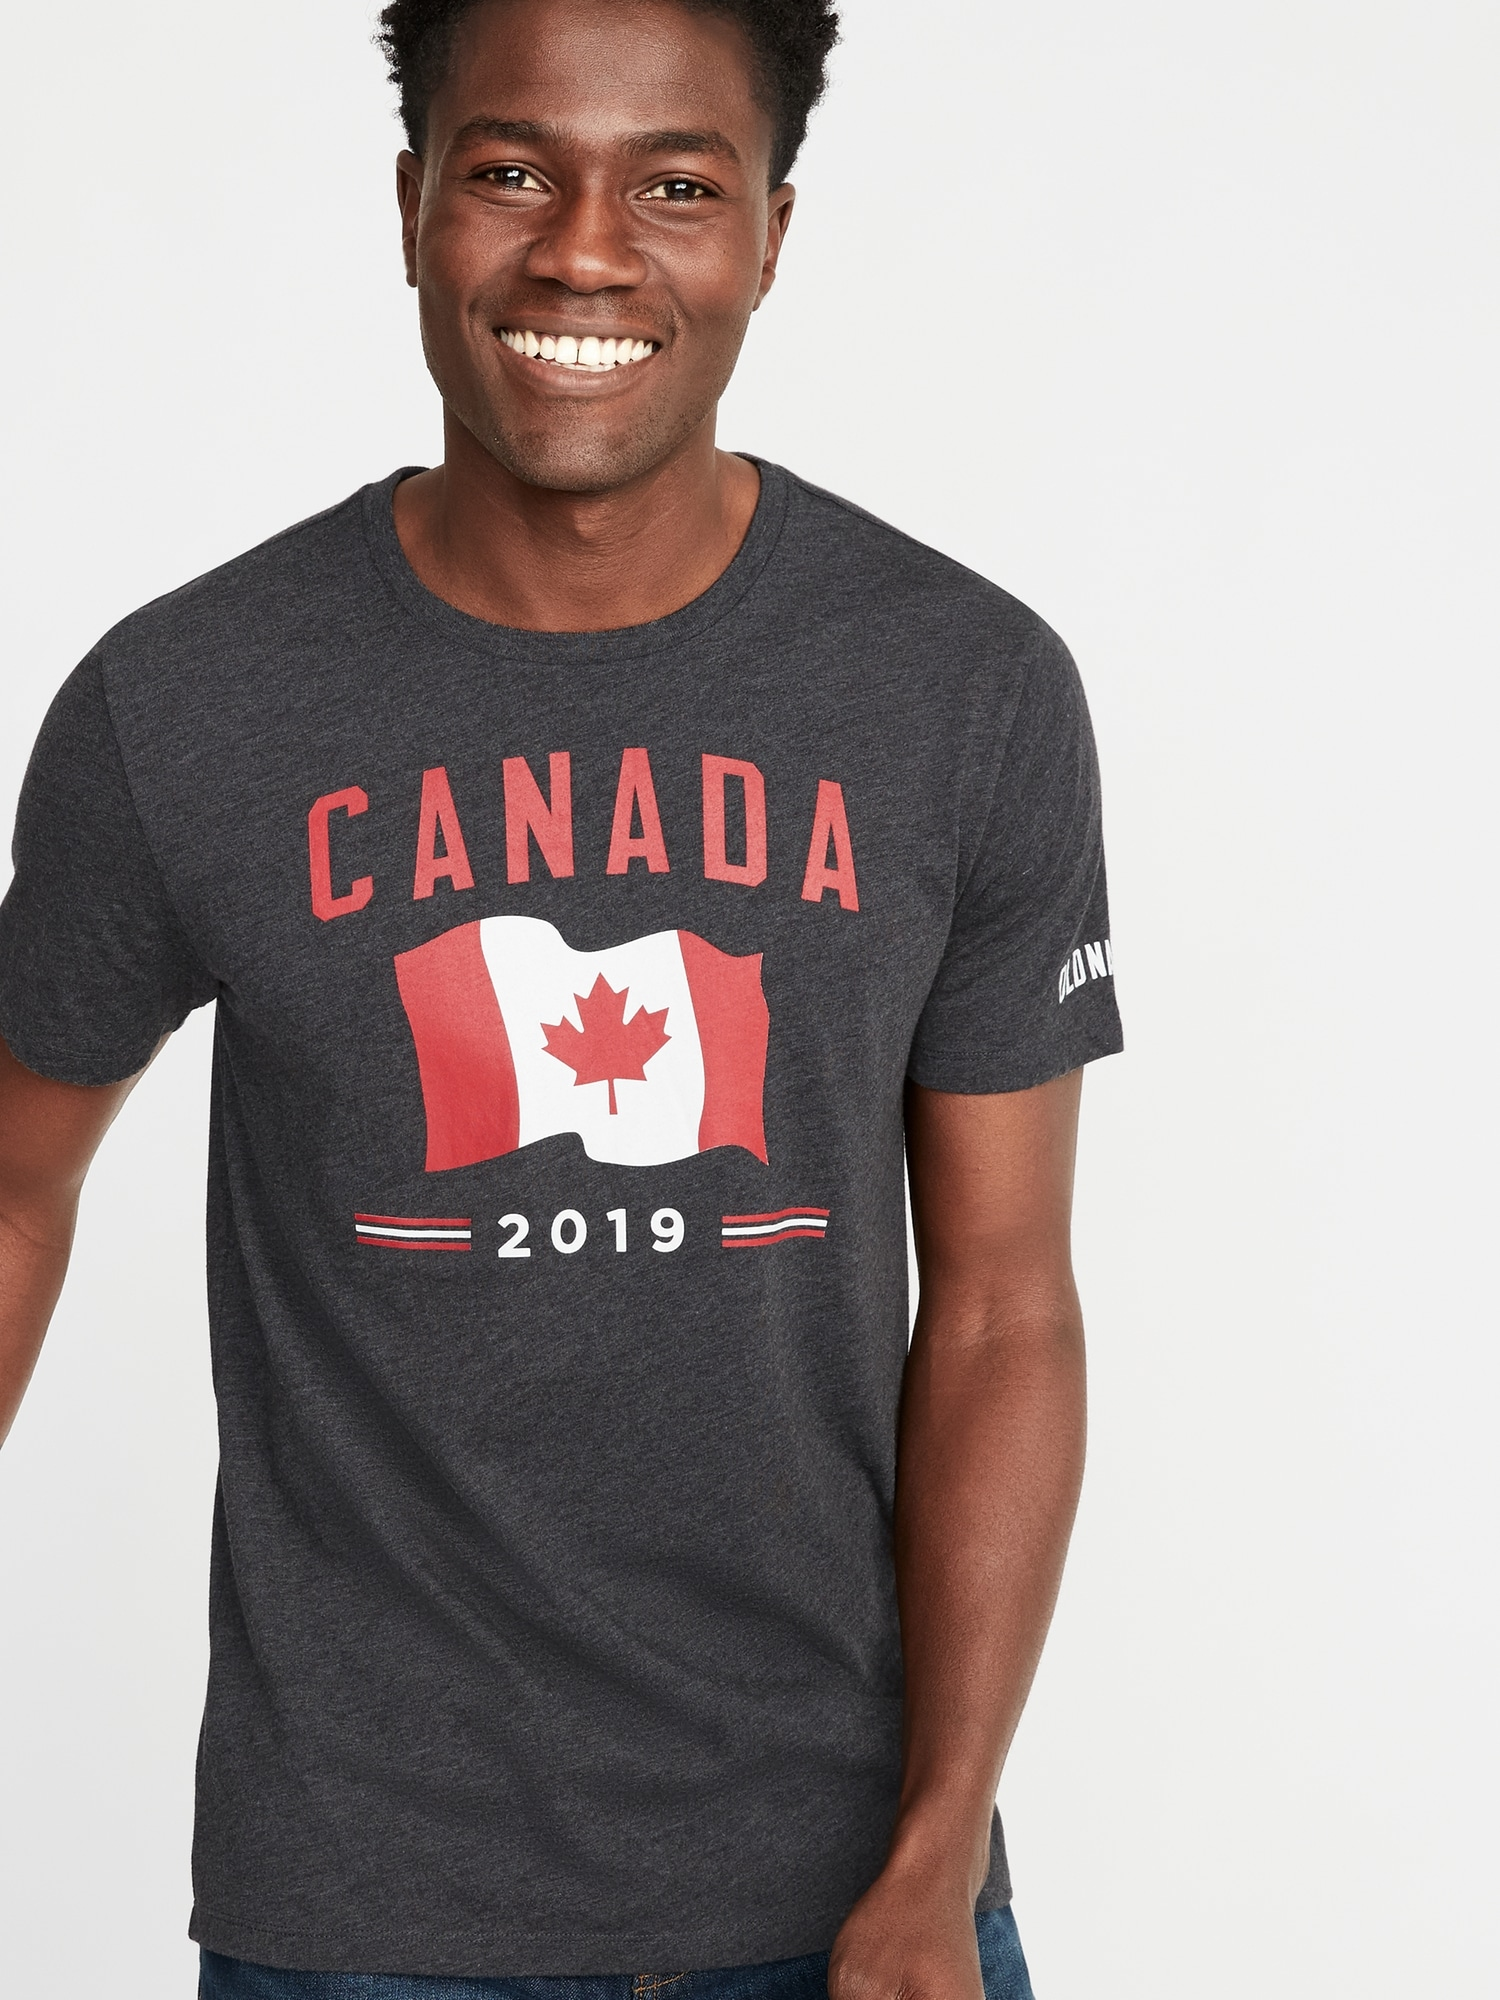 5ec9d8ef Canada-Graphic 2019 Flag Tee for Men | Old Navy